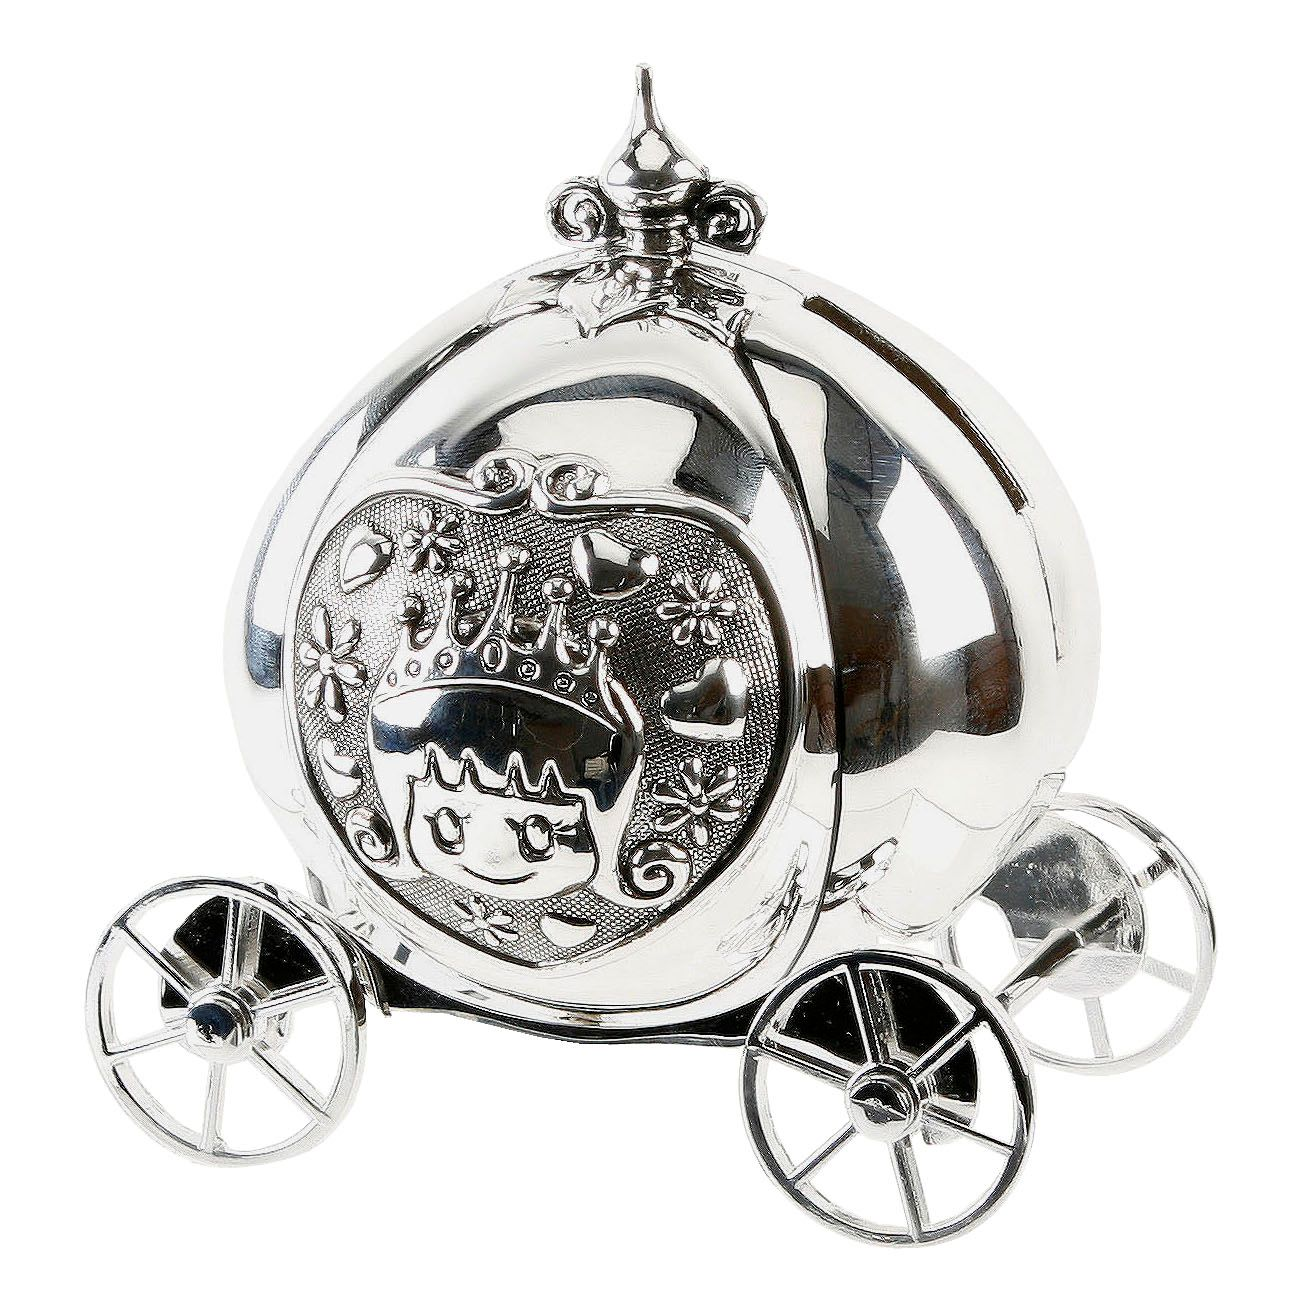 Bambino Bambino S/plated money box - cinderella